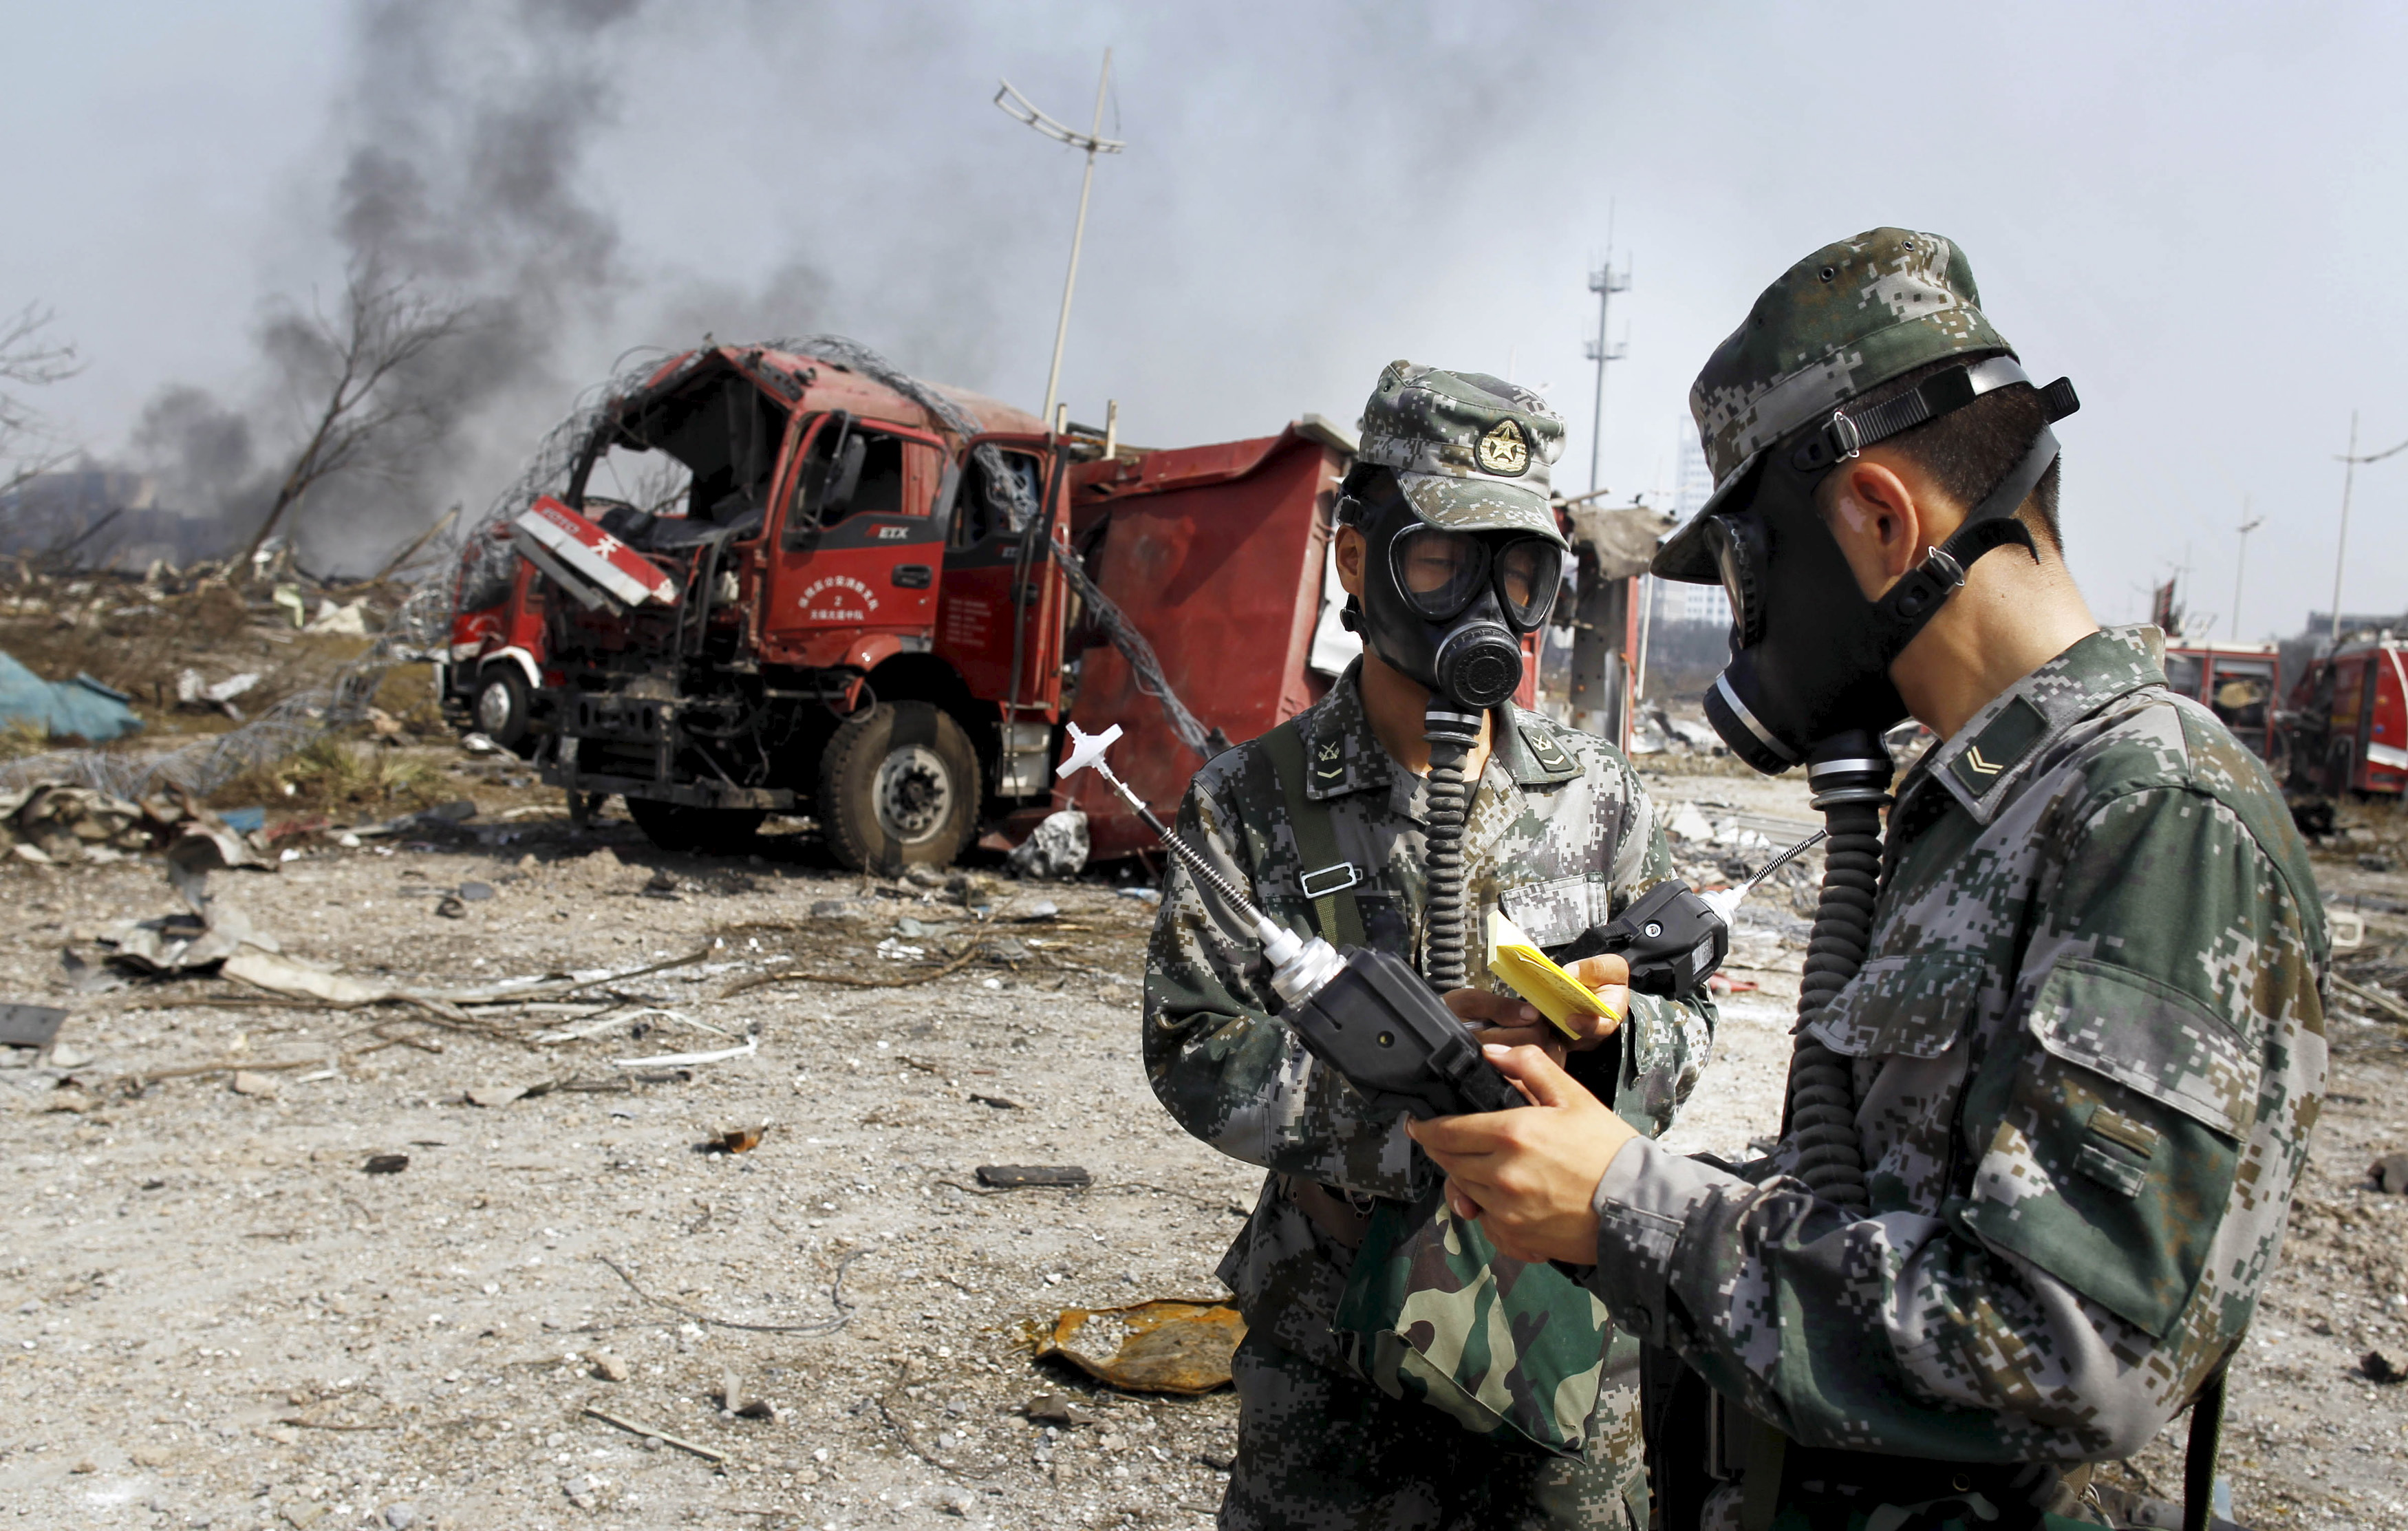 Soldiers of the People's Liberation Army antichemical-warfare corps work next to a damaged firefighting vehicle at the site of the Aug. 12 explosions at Binhai new district in Tianjin, China, on Aug. 16, 2015.